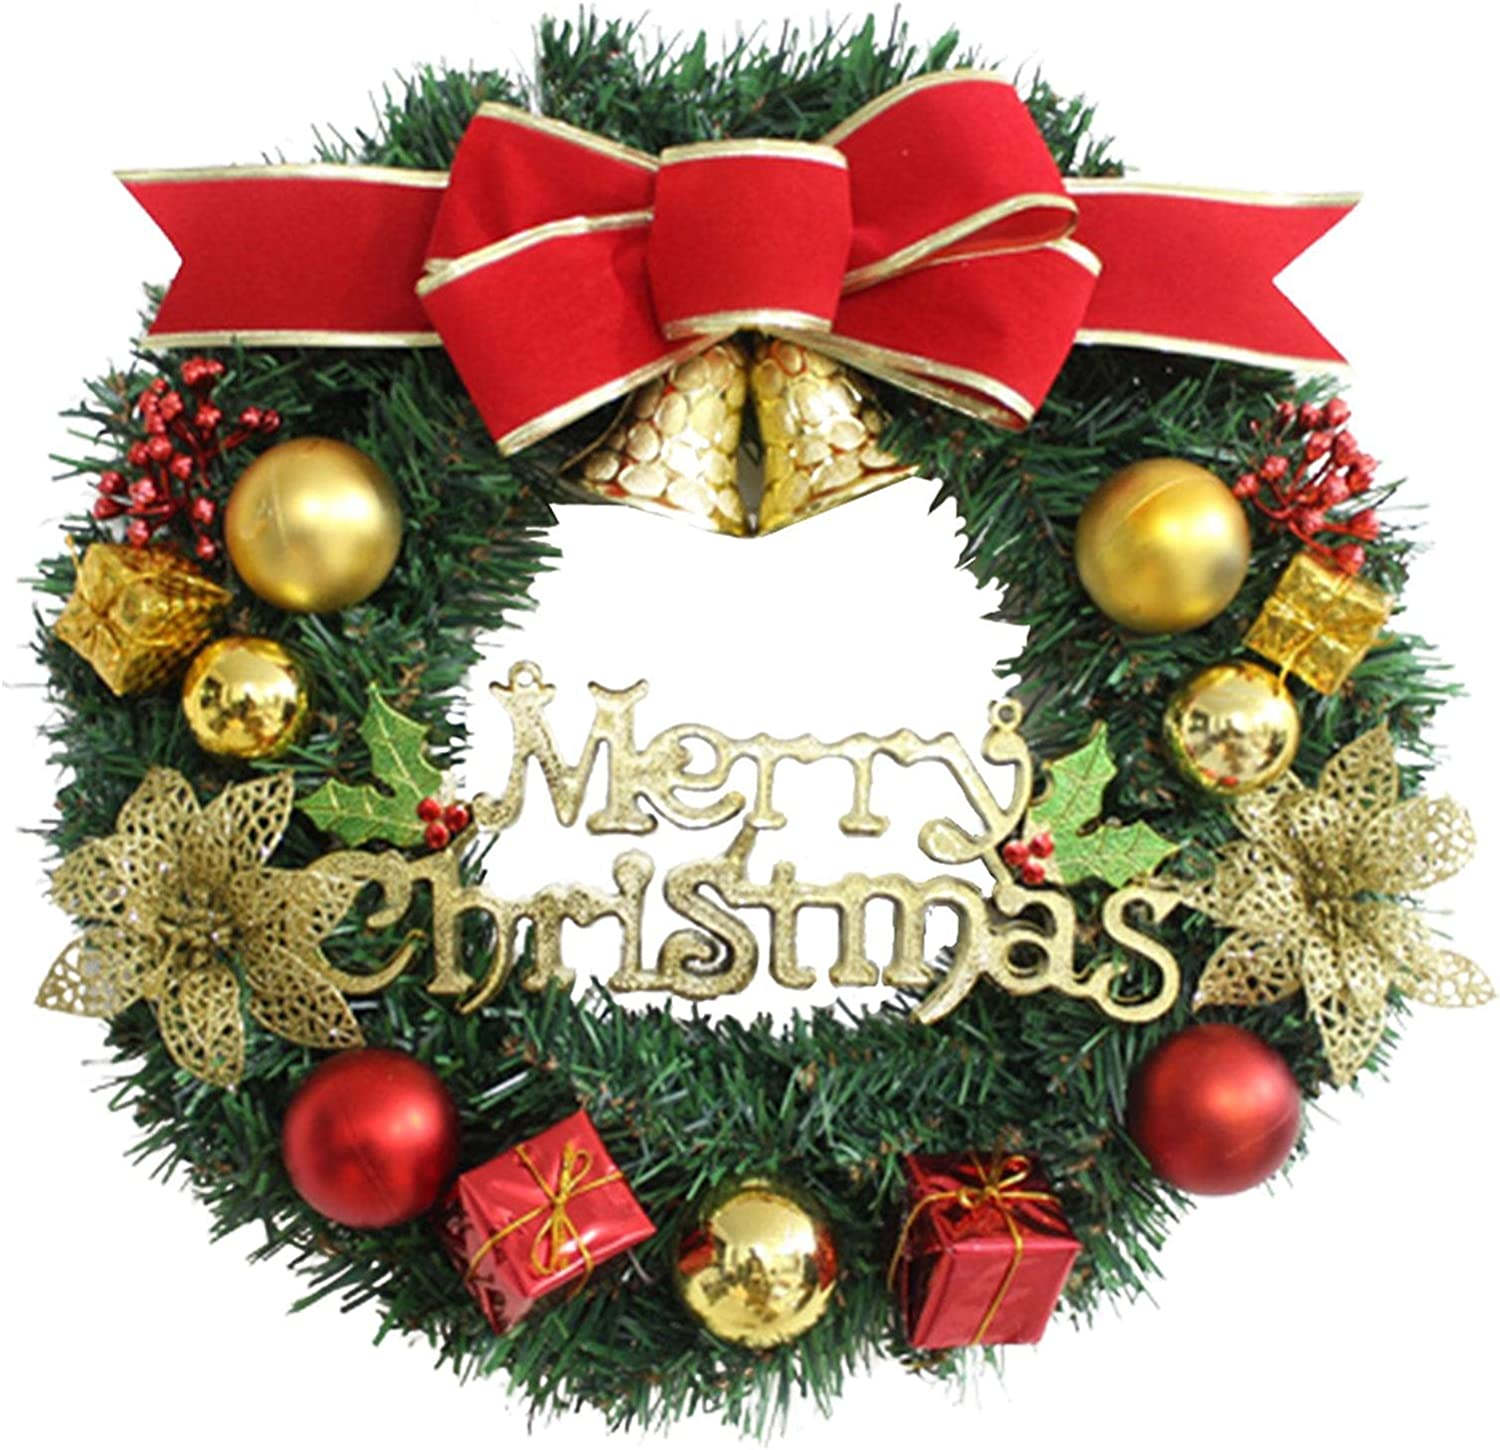 BWWNBY 30cm Christmas Wreath Super beauty product restock quality top Door Limited time sale Front Decoration Hangi